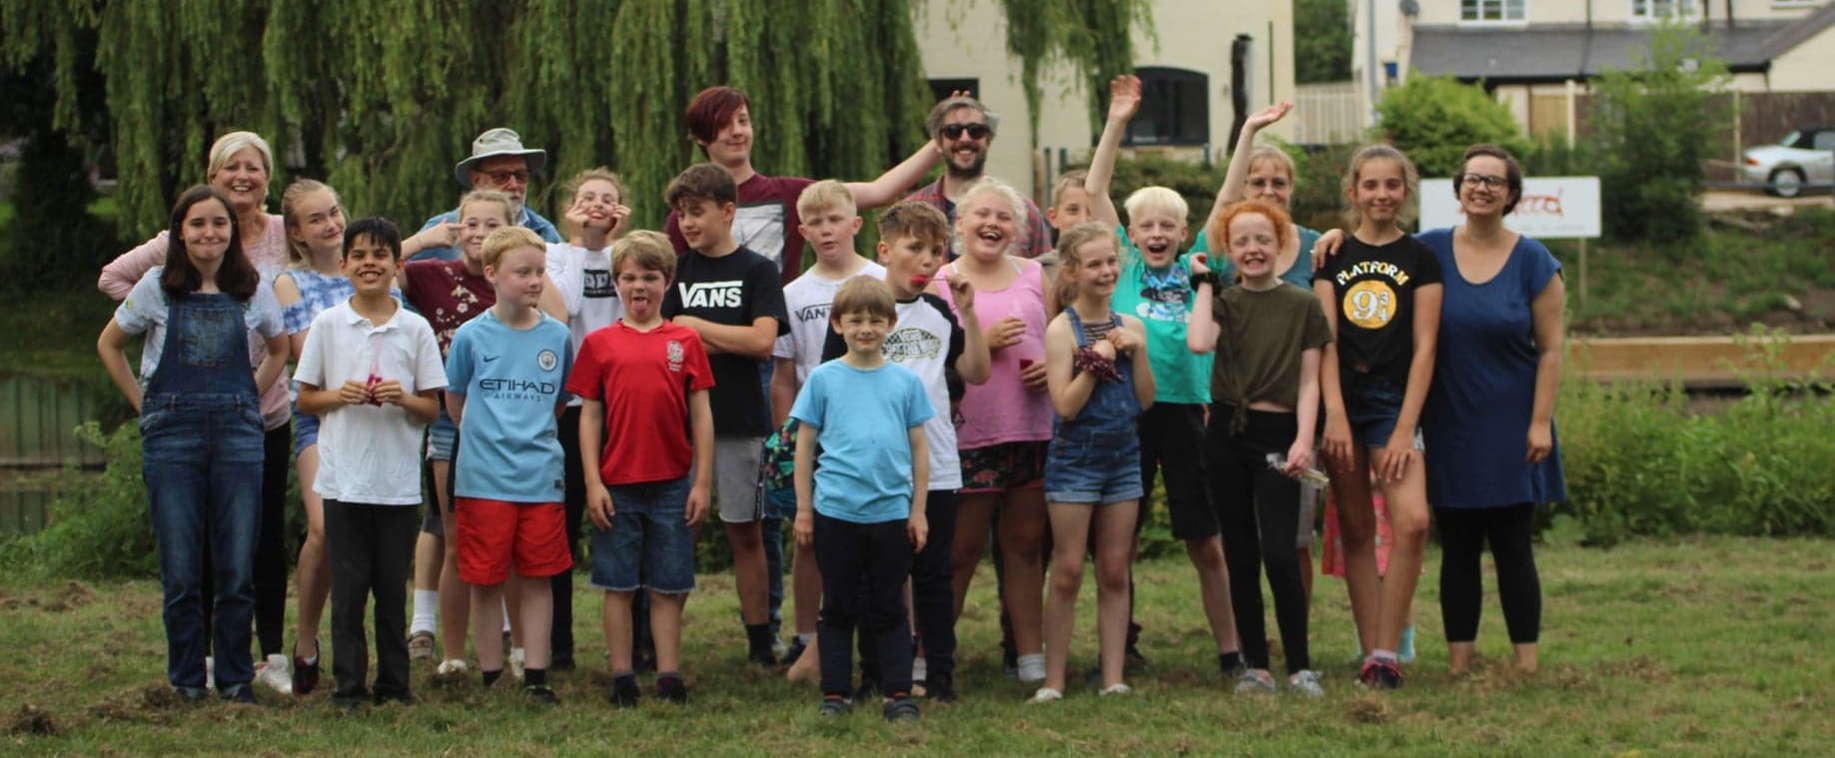 Open Harvington Youth Project celebrates 25 years